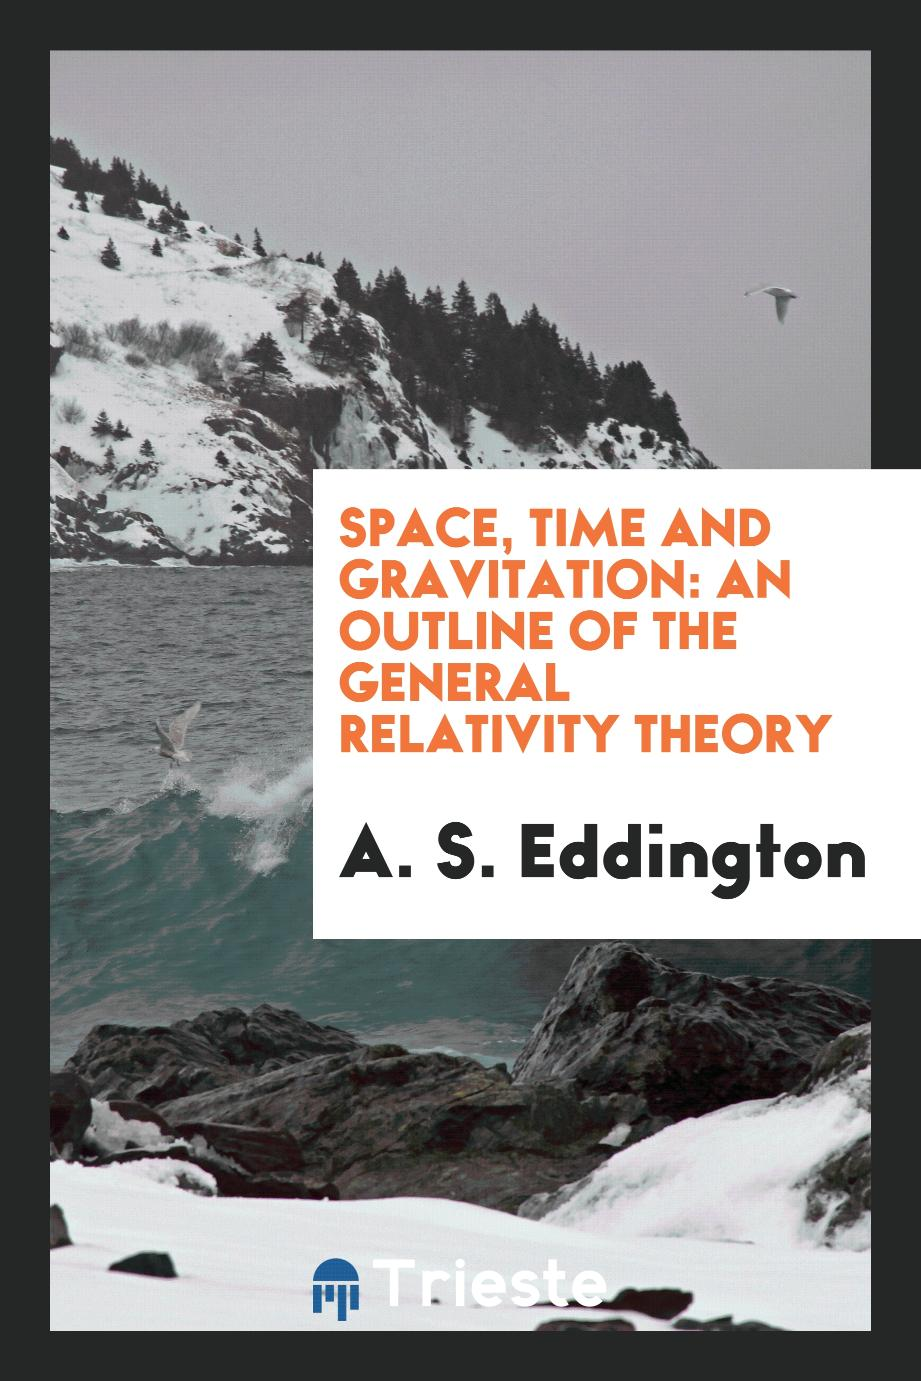 A. S. Eddington - Space, Time and Gravitation: An Outline of the General Relativity Theory